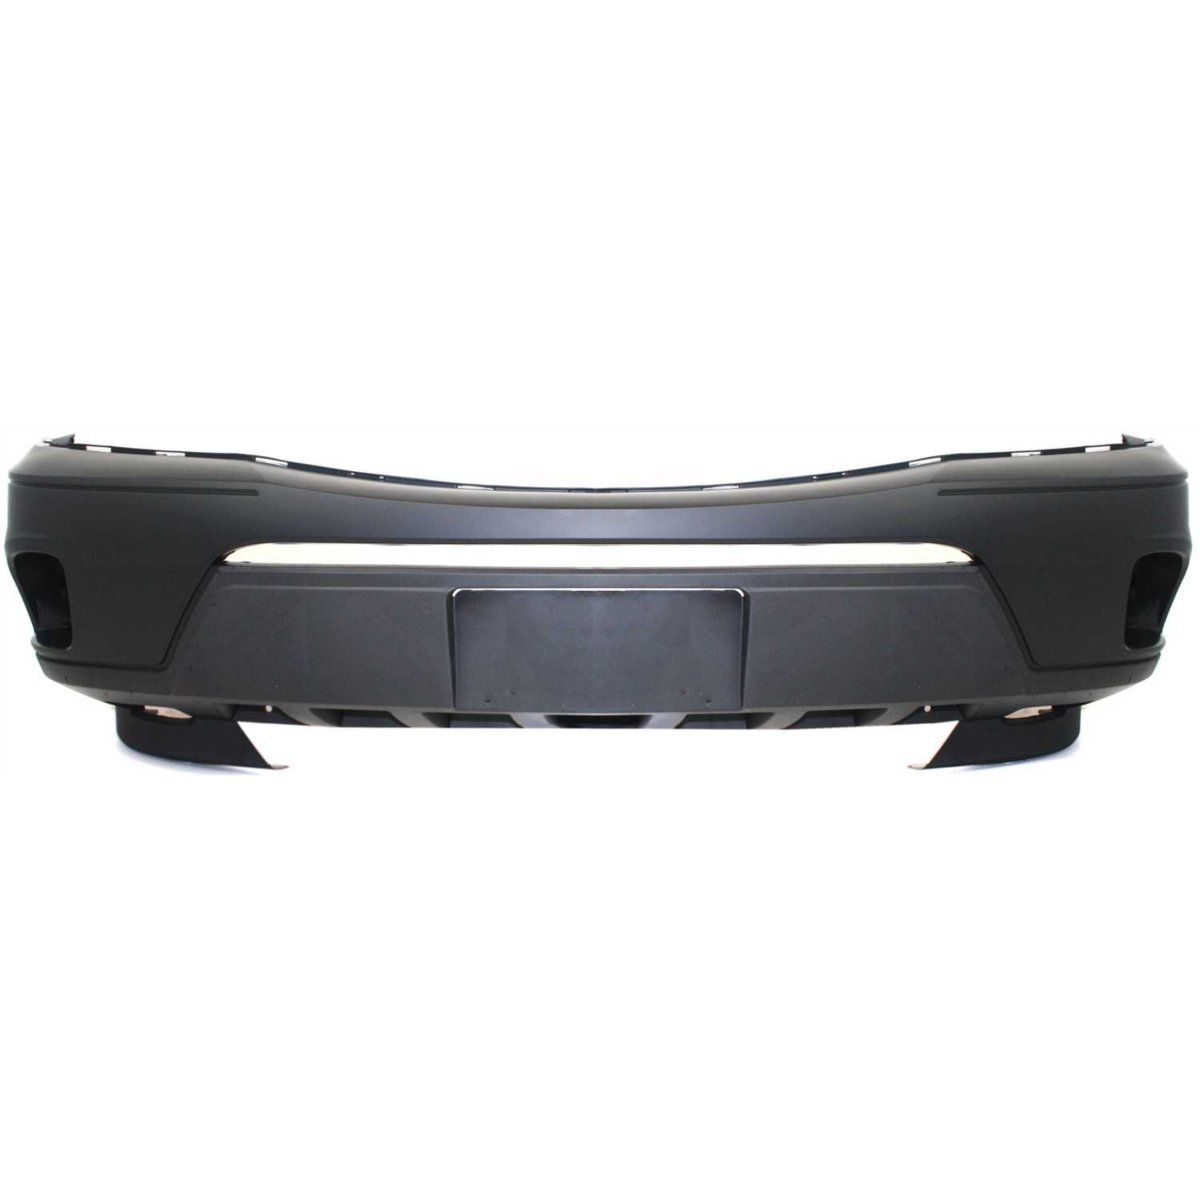 2002-2007 BUICK RENDEZVOUS Front Bumper Cover Painted to Match